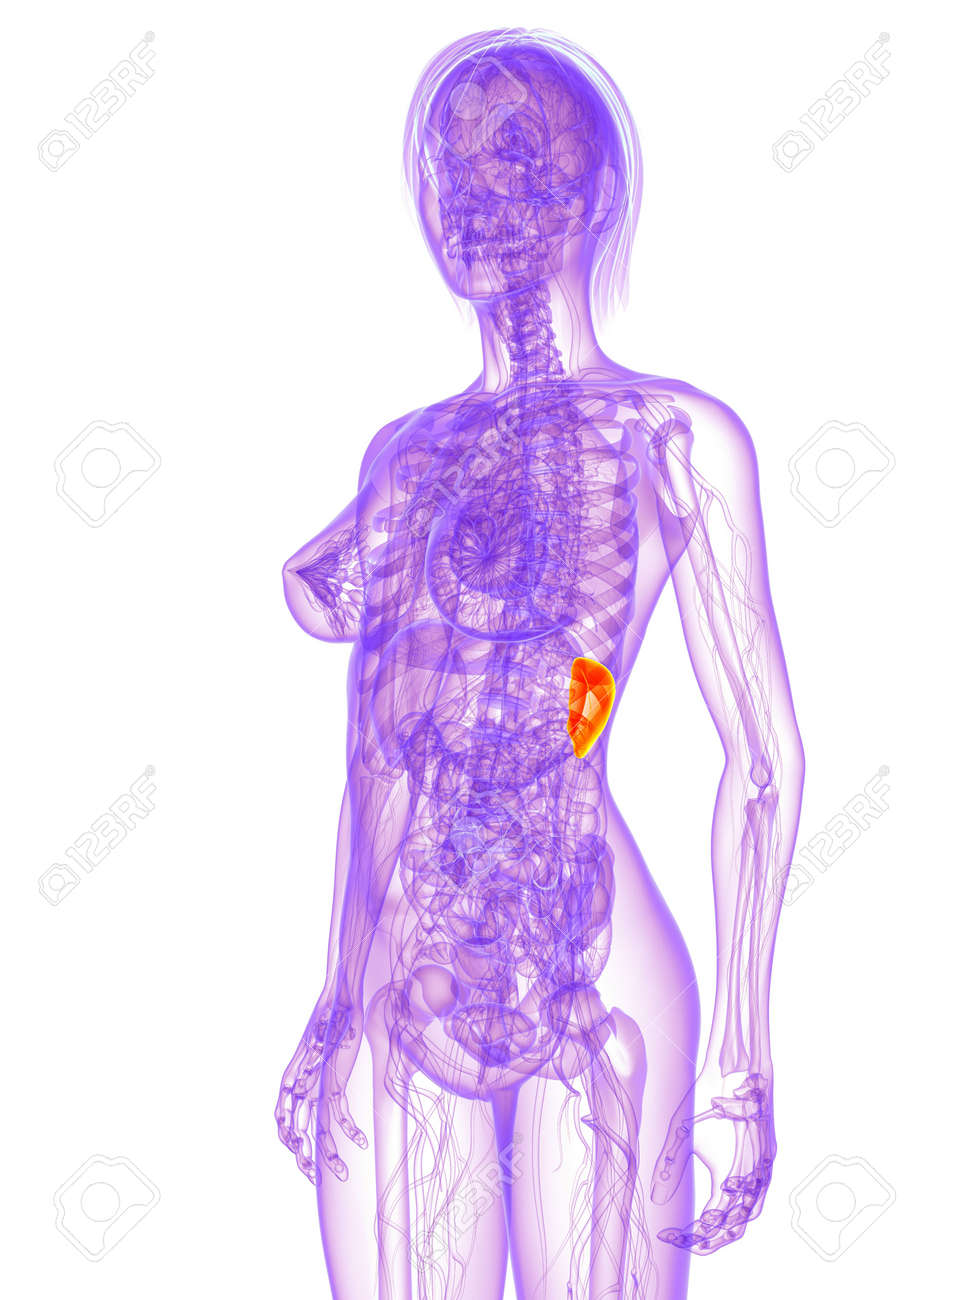 Female Anatomy Spleen Stock Photo Picture And Royalty Free Image